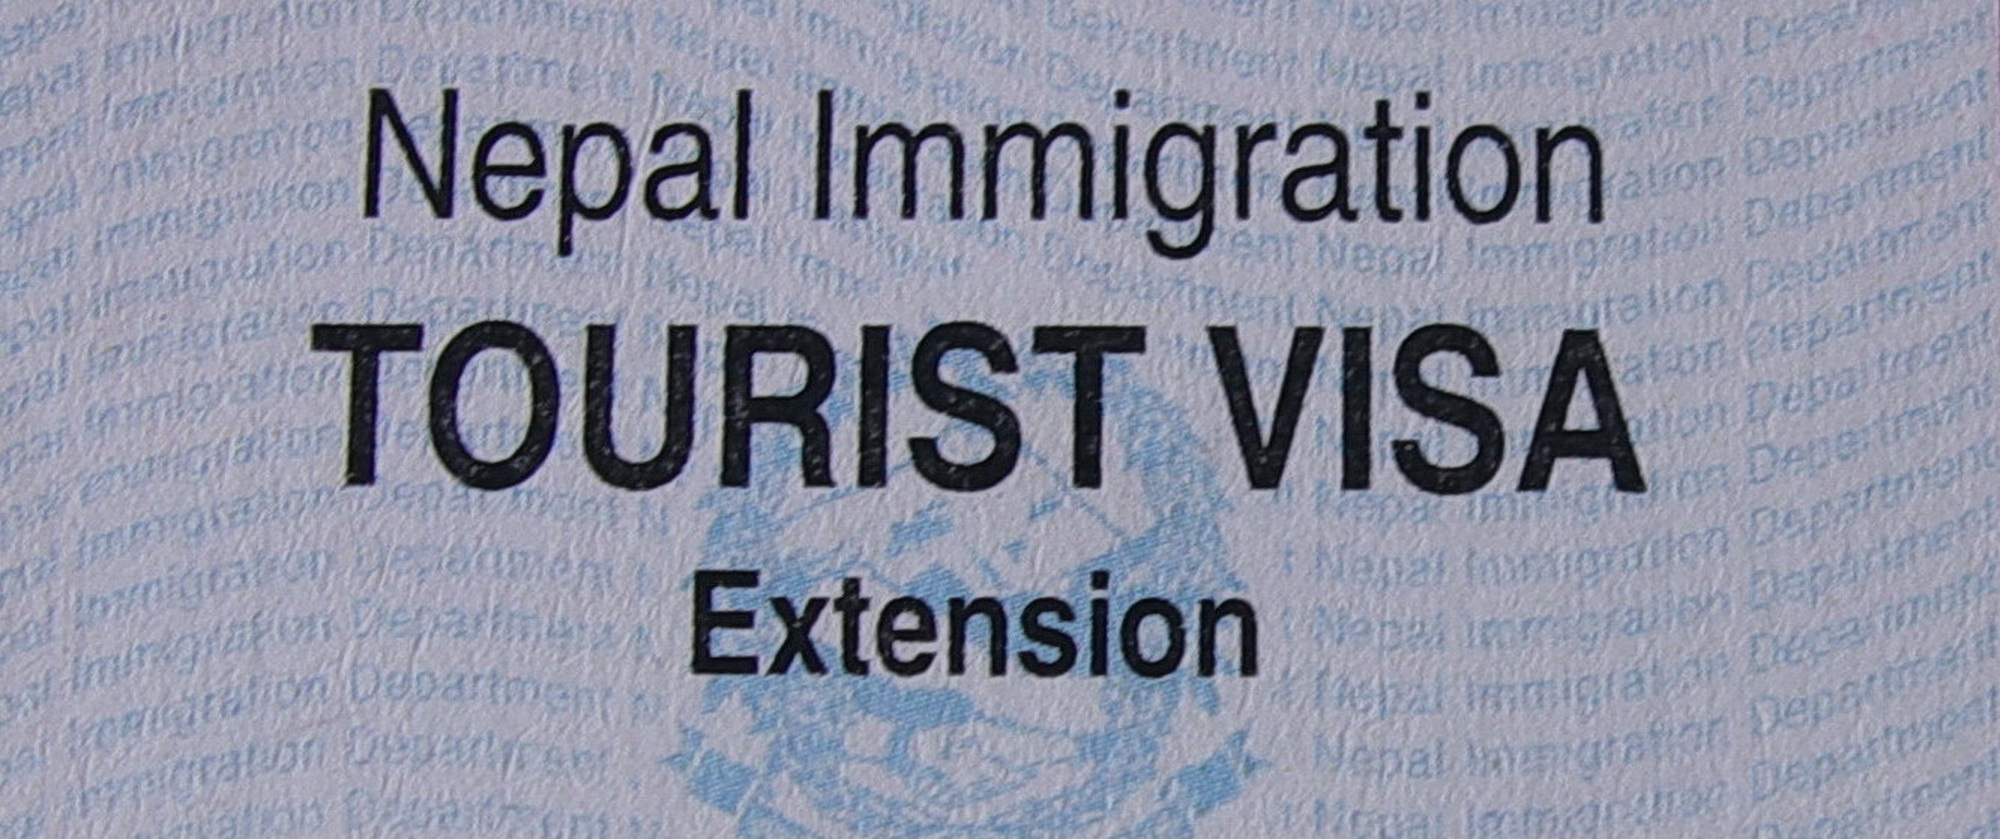 Tourist visa Extension in Nepal